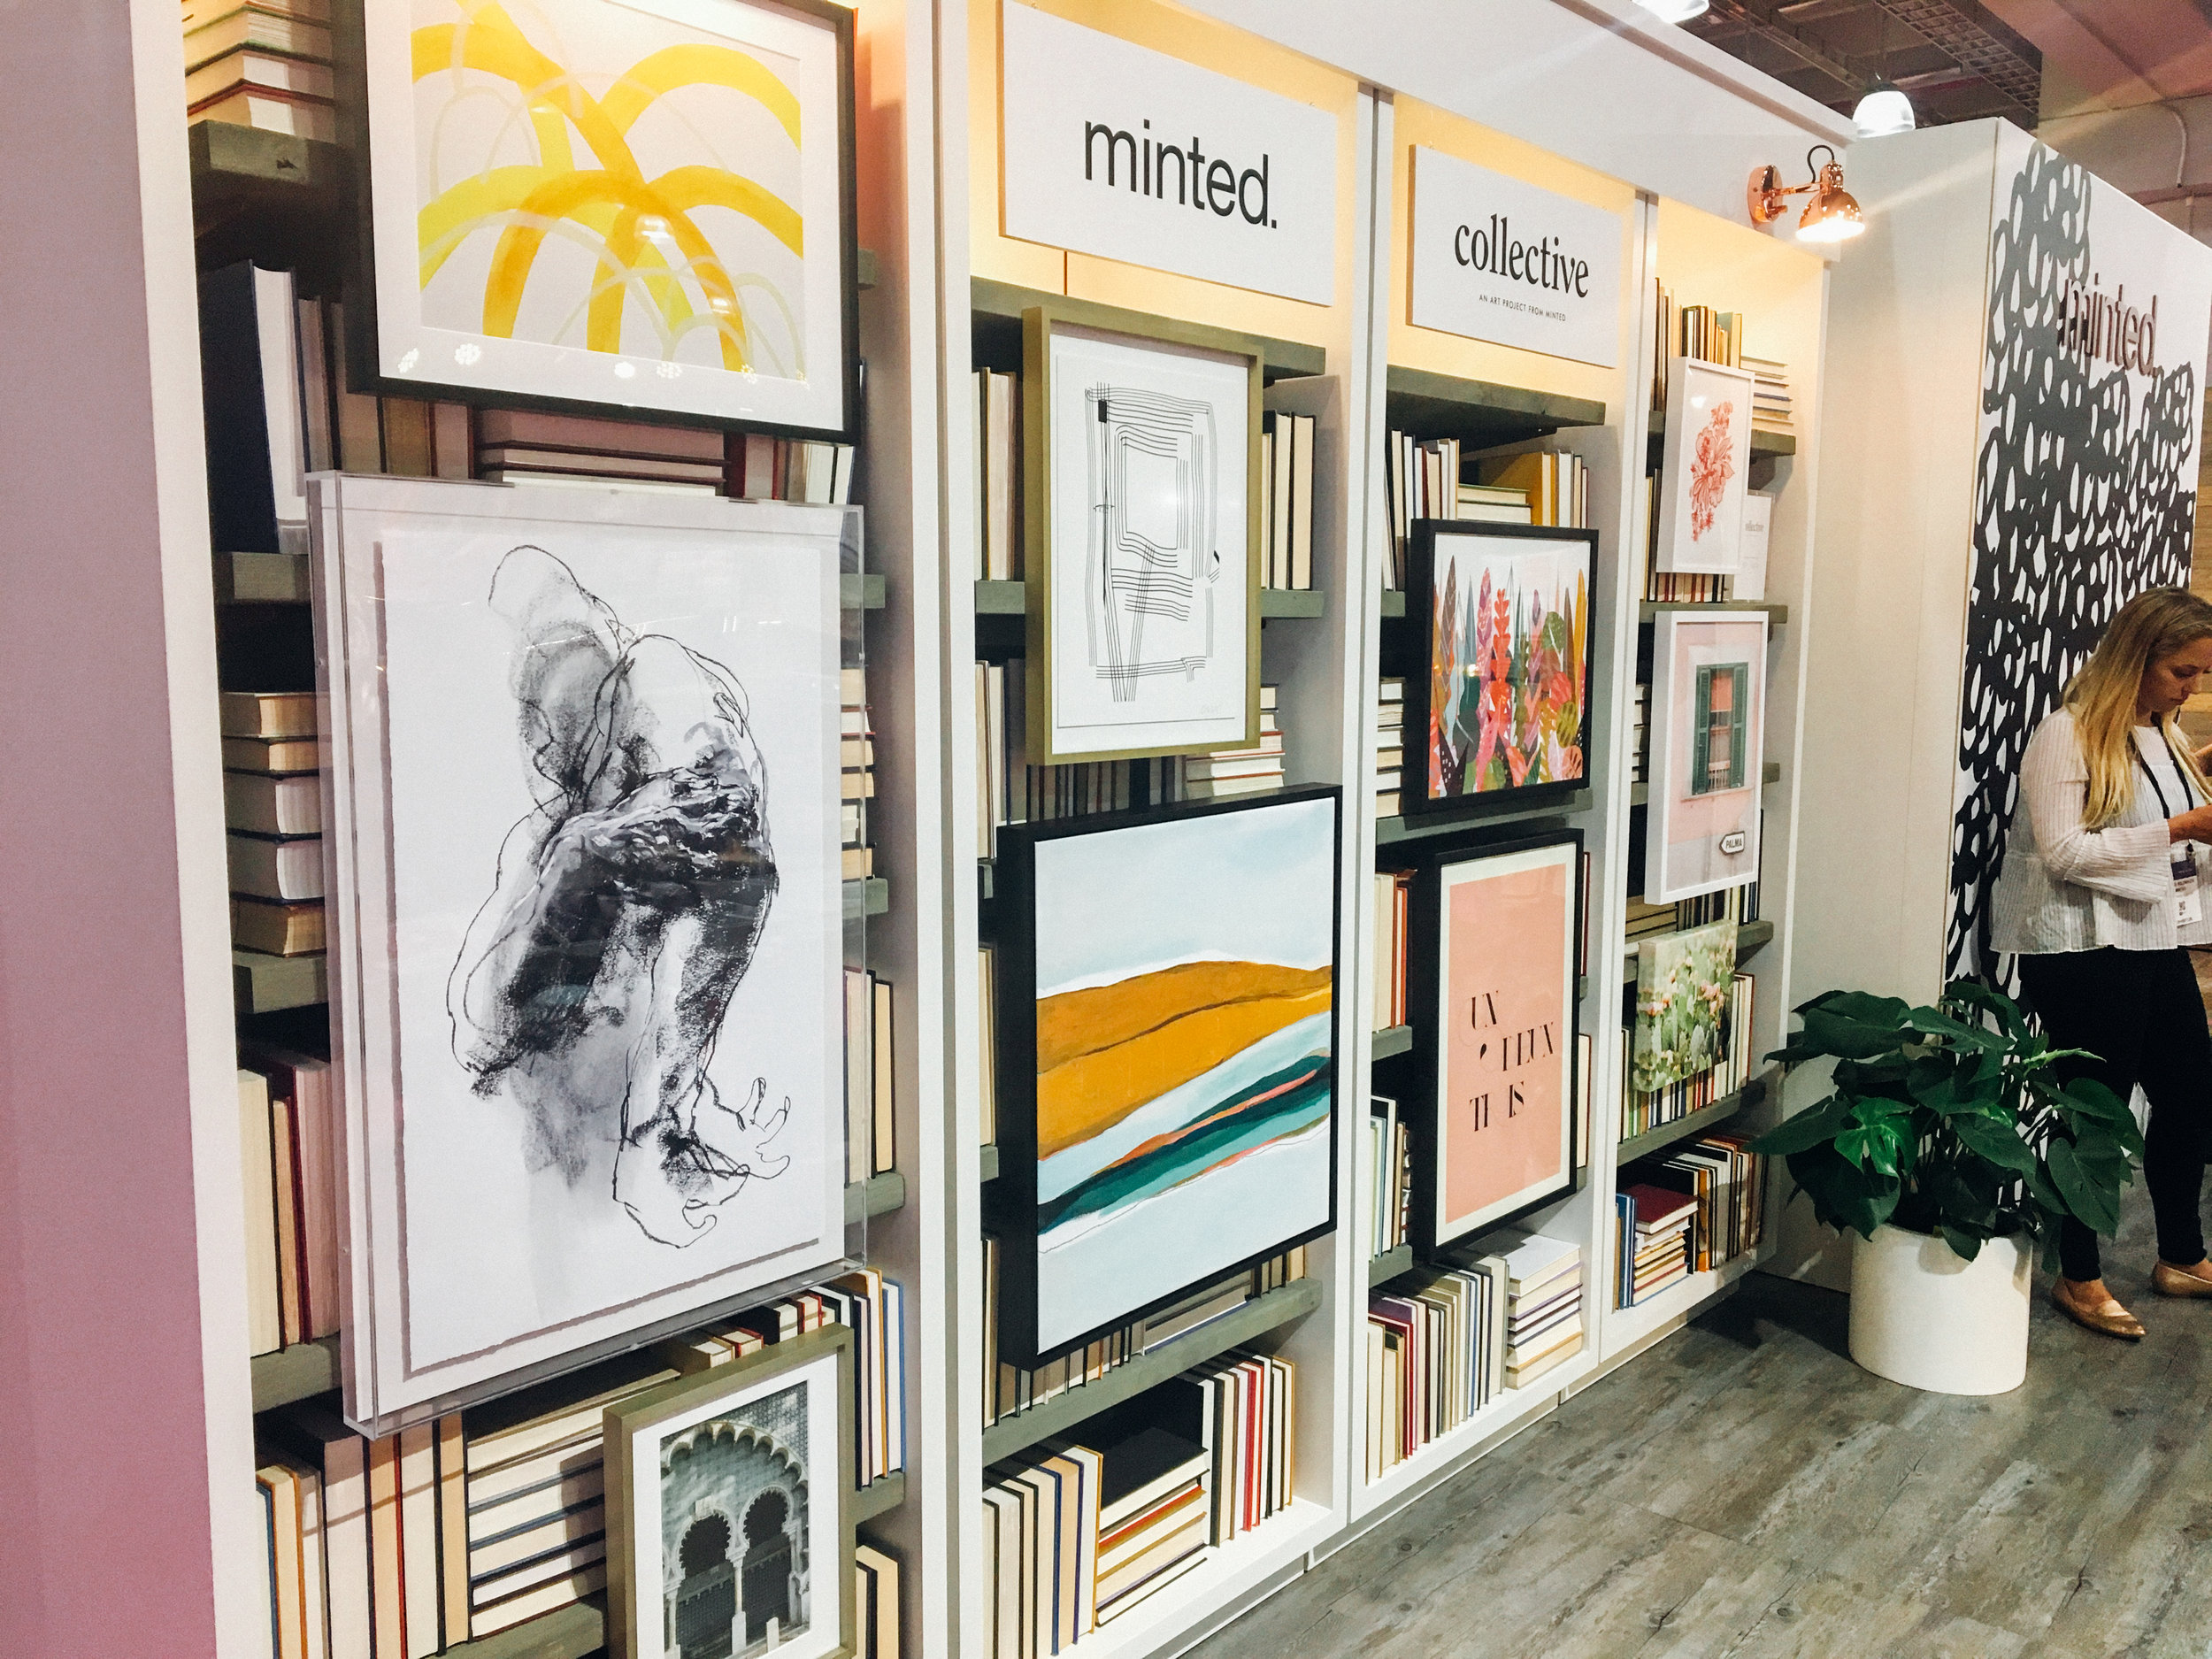 First stop was of course the Minted booth. I got to chat with a Minted wedding merchandiser who was familiar with my work, which is always flattering!